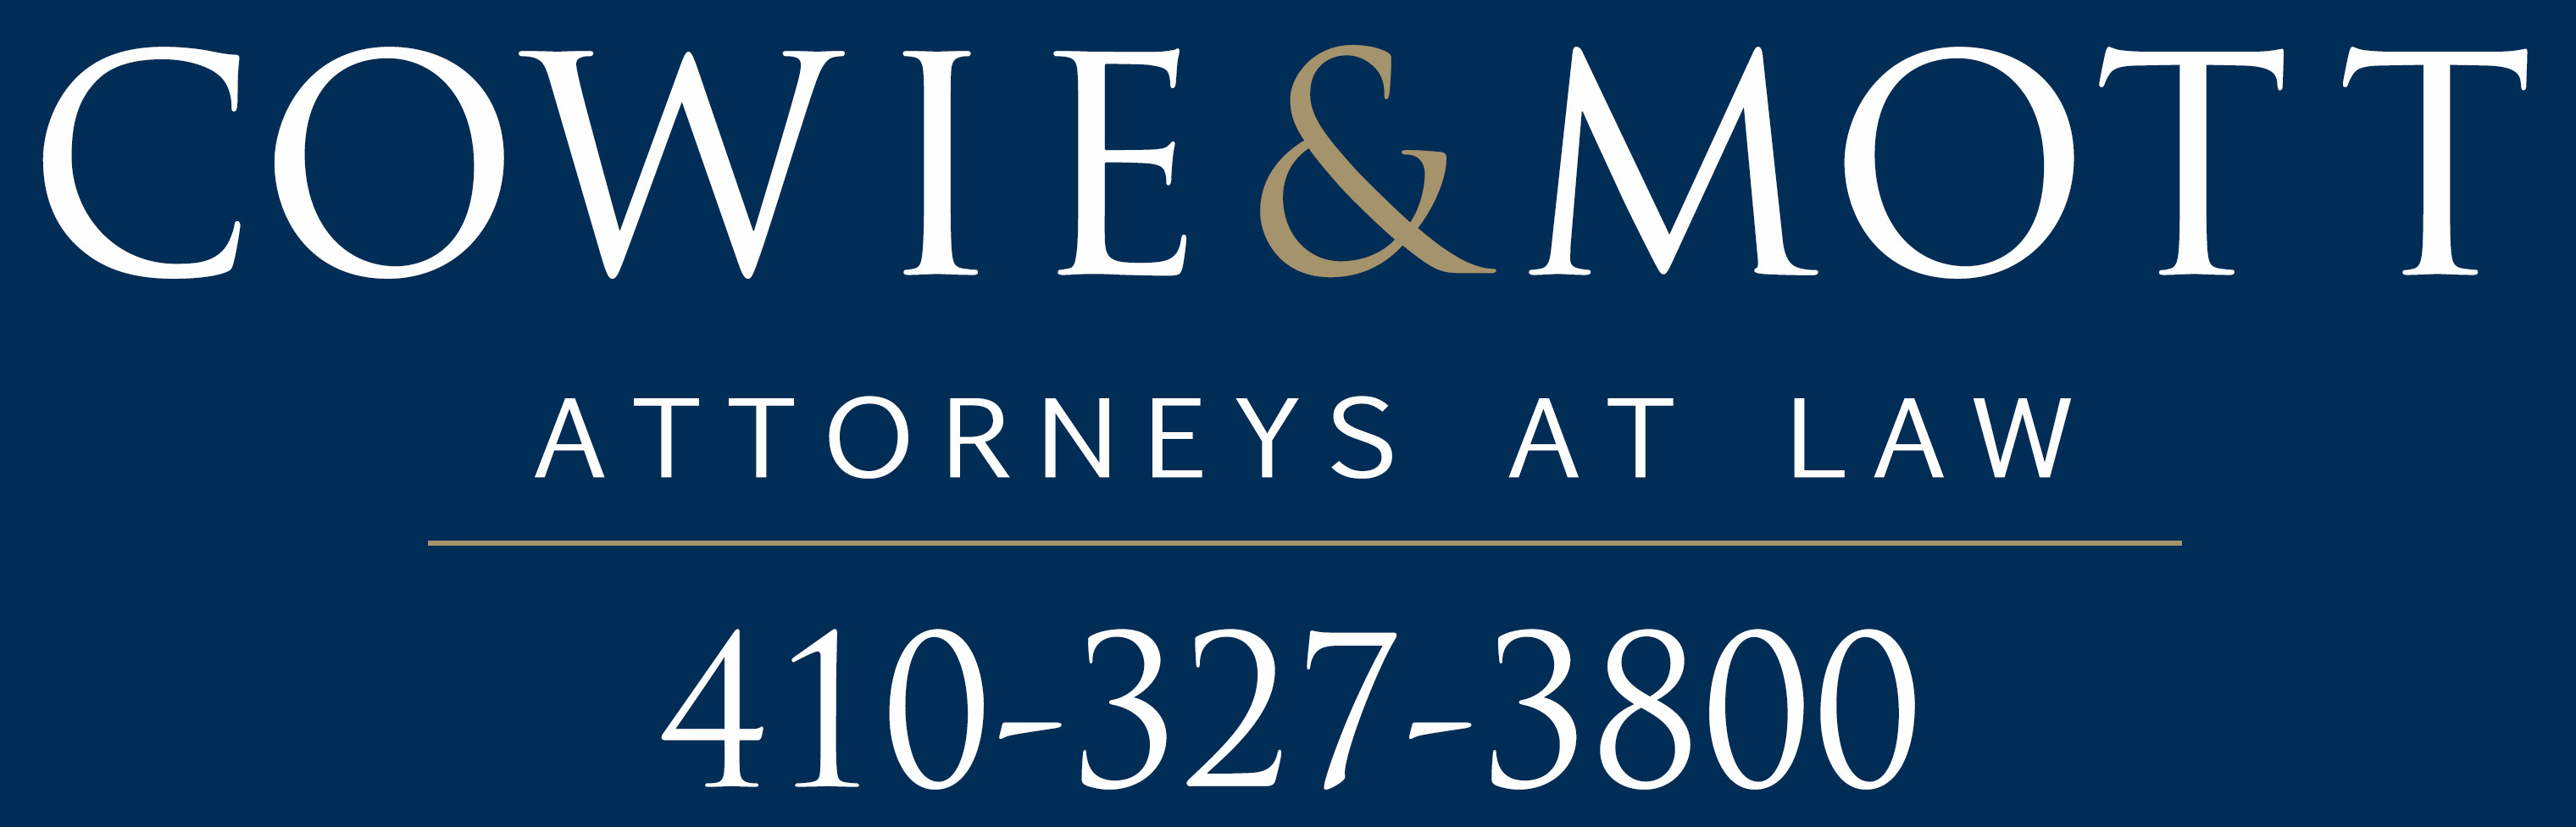 Cowie & Mott Business Lawyers Logo